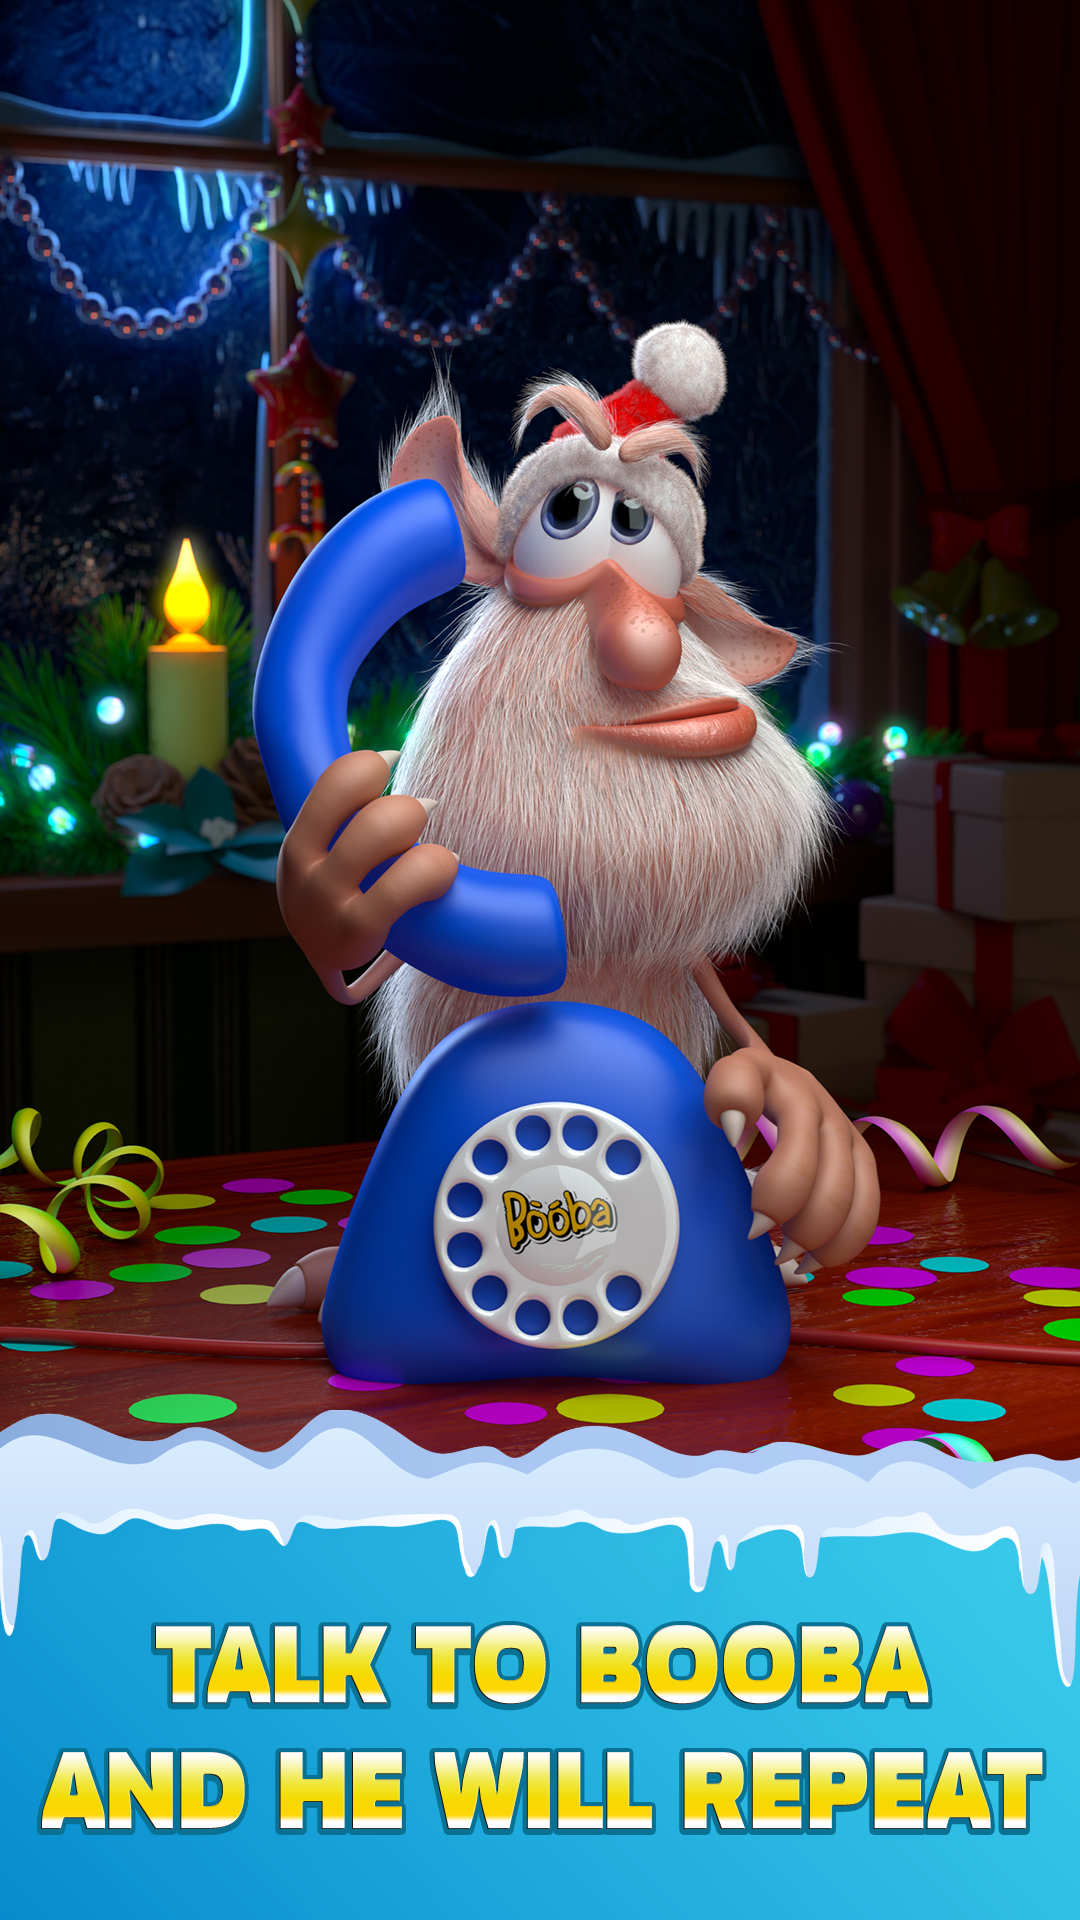 Amazon.com: Talking Booba: Santa's Pet: Appstore for Android